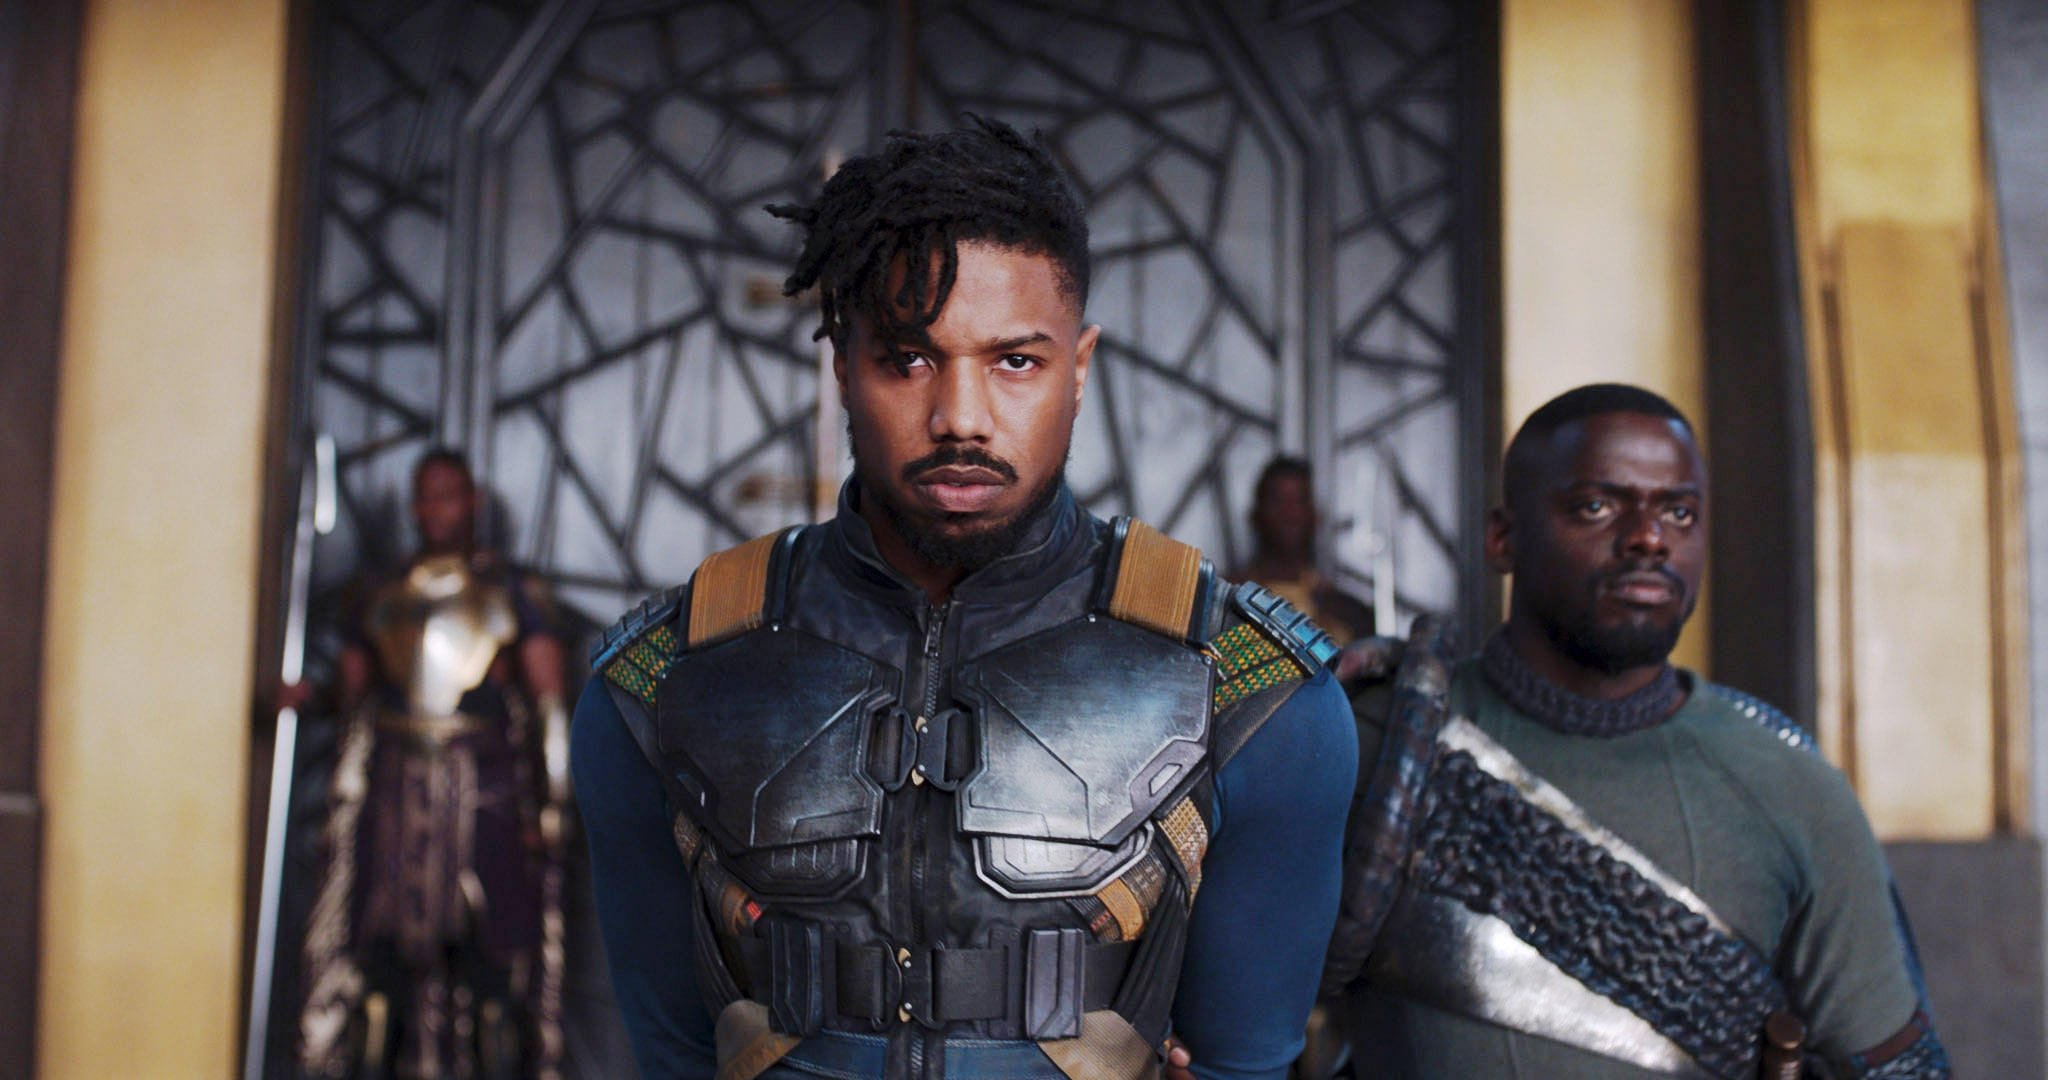 BLACK PANTHER, from left: Michael B. Jordan, Daniel Kaluuya, 2018.  Marvel /  Walt Disney Studios Motion Pictures /Courtesy Everett Collection